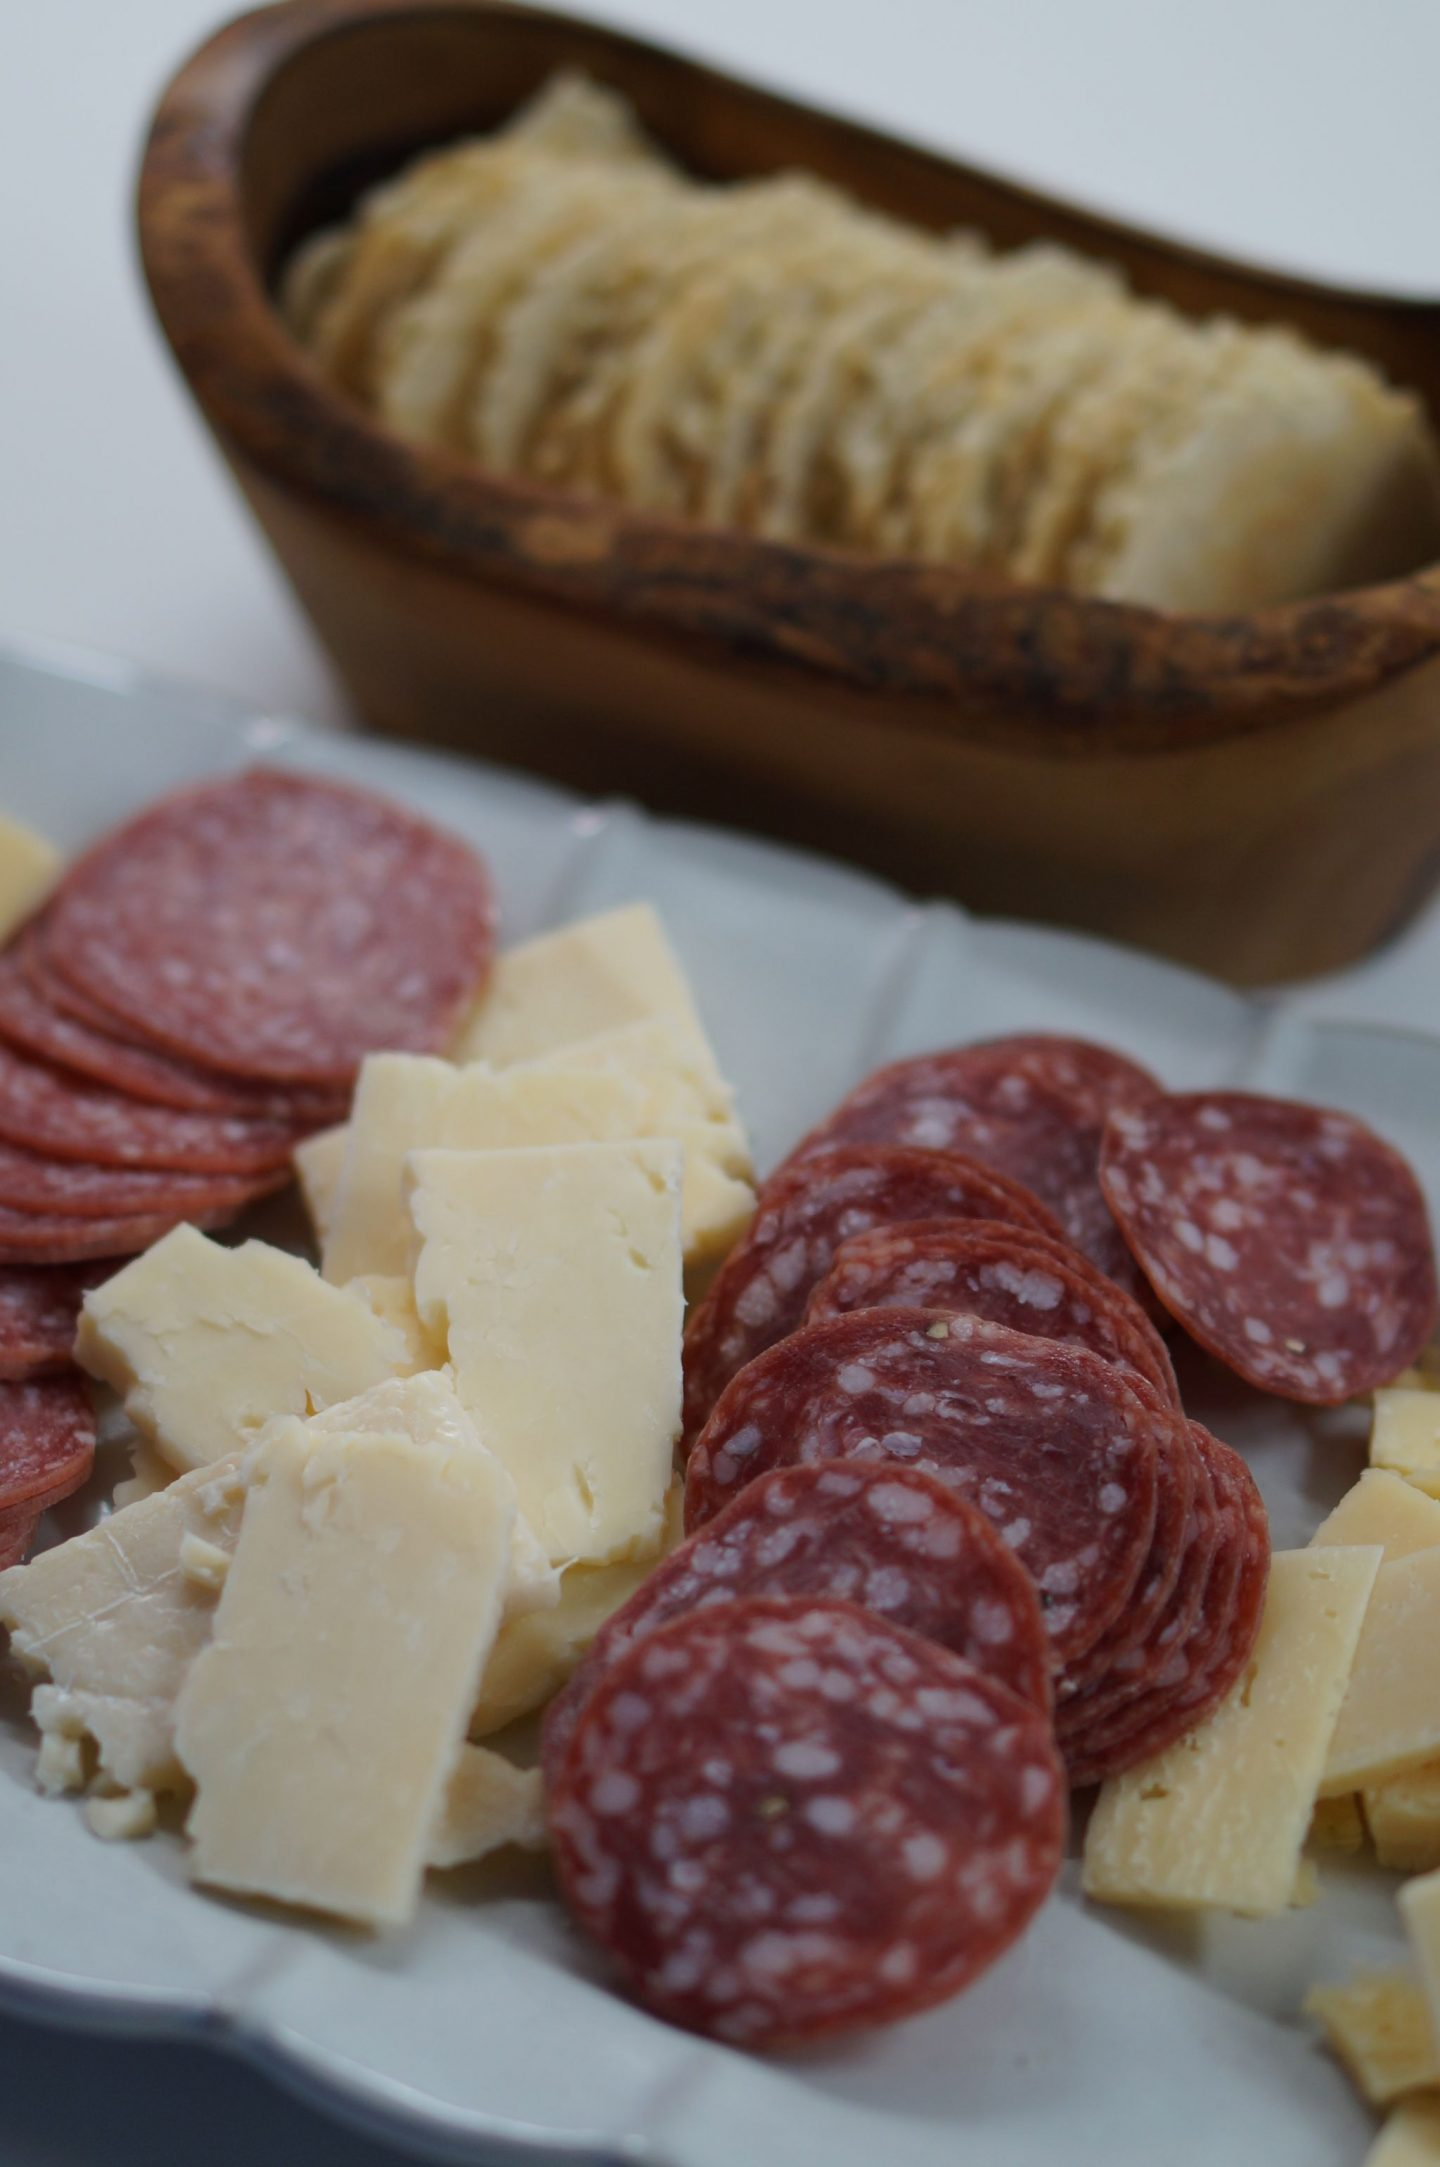 NC blogger Rebecca Lately shares her favorite cheese plate with Stella® cheese. If you want to add a little gourmet to your holiday, check it out!